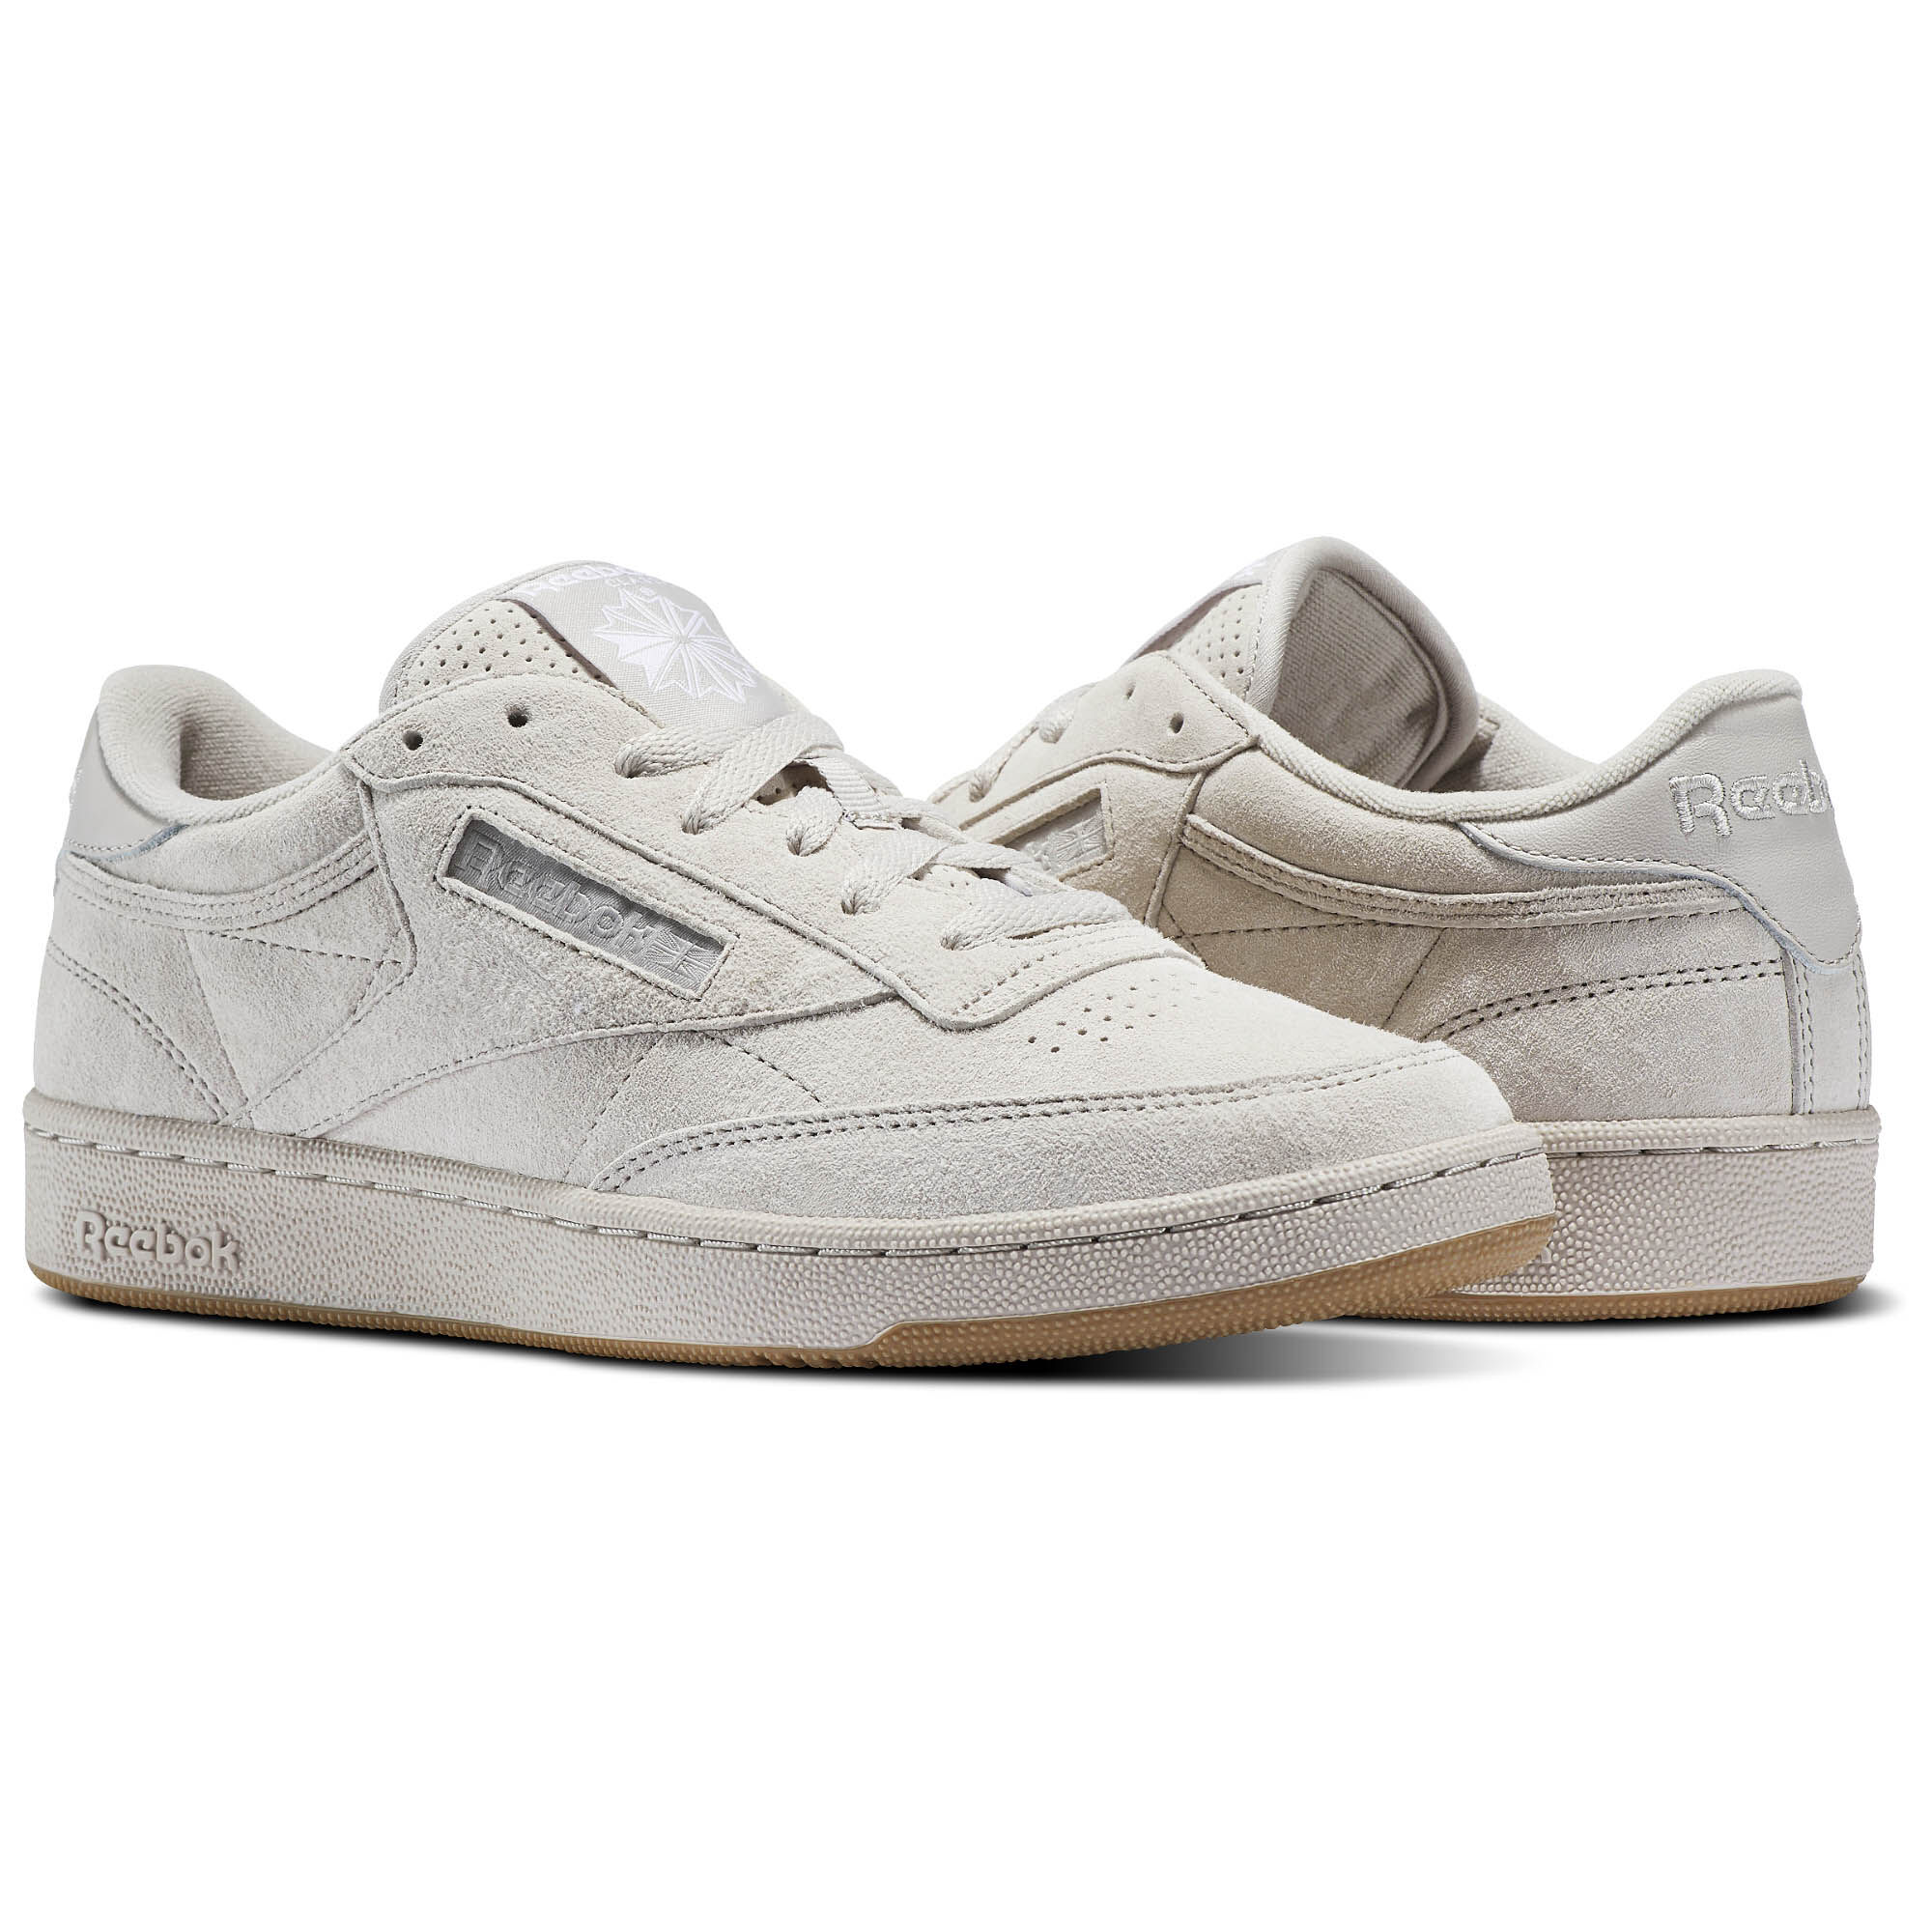 Classic Club C 85 Trainers In White And Gum - White Reebok 8ZKKv8HAT6